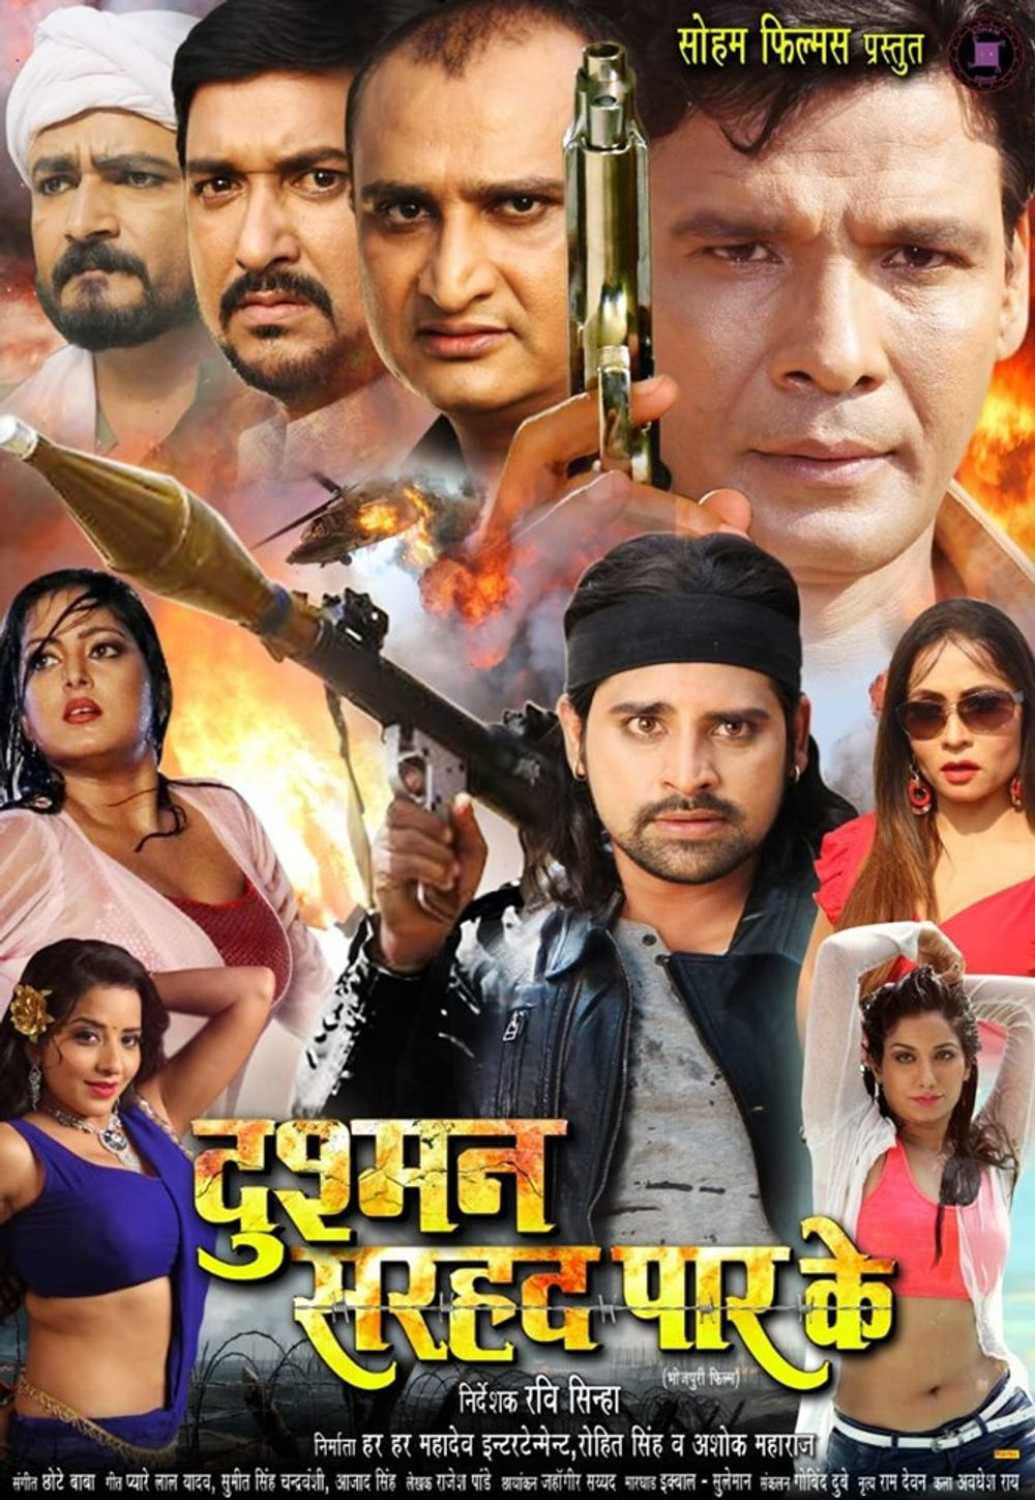 Dushman Sarhad Paar Ke 2021 Bhojpuri 720p HDRip 1GB Download